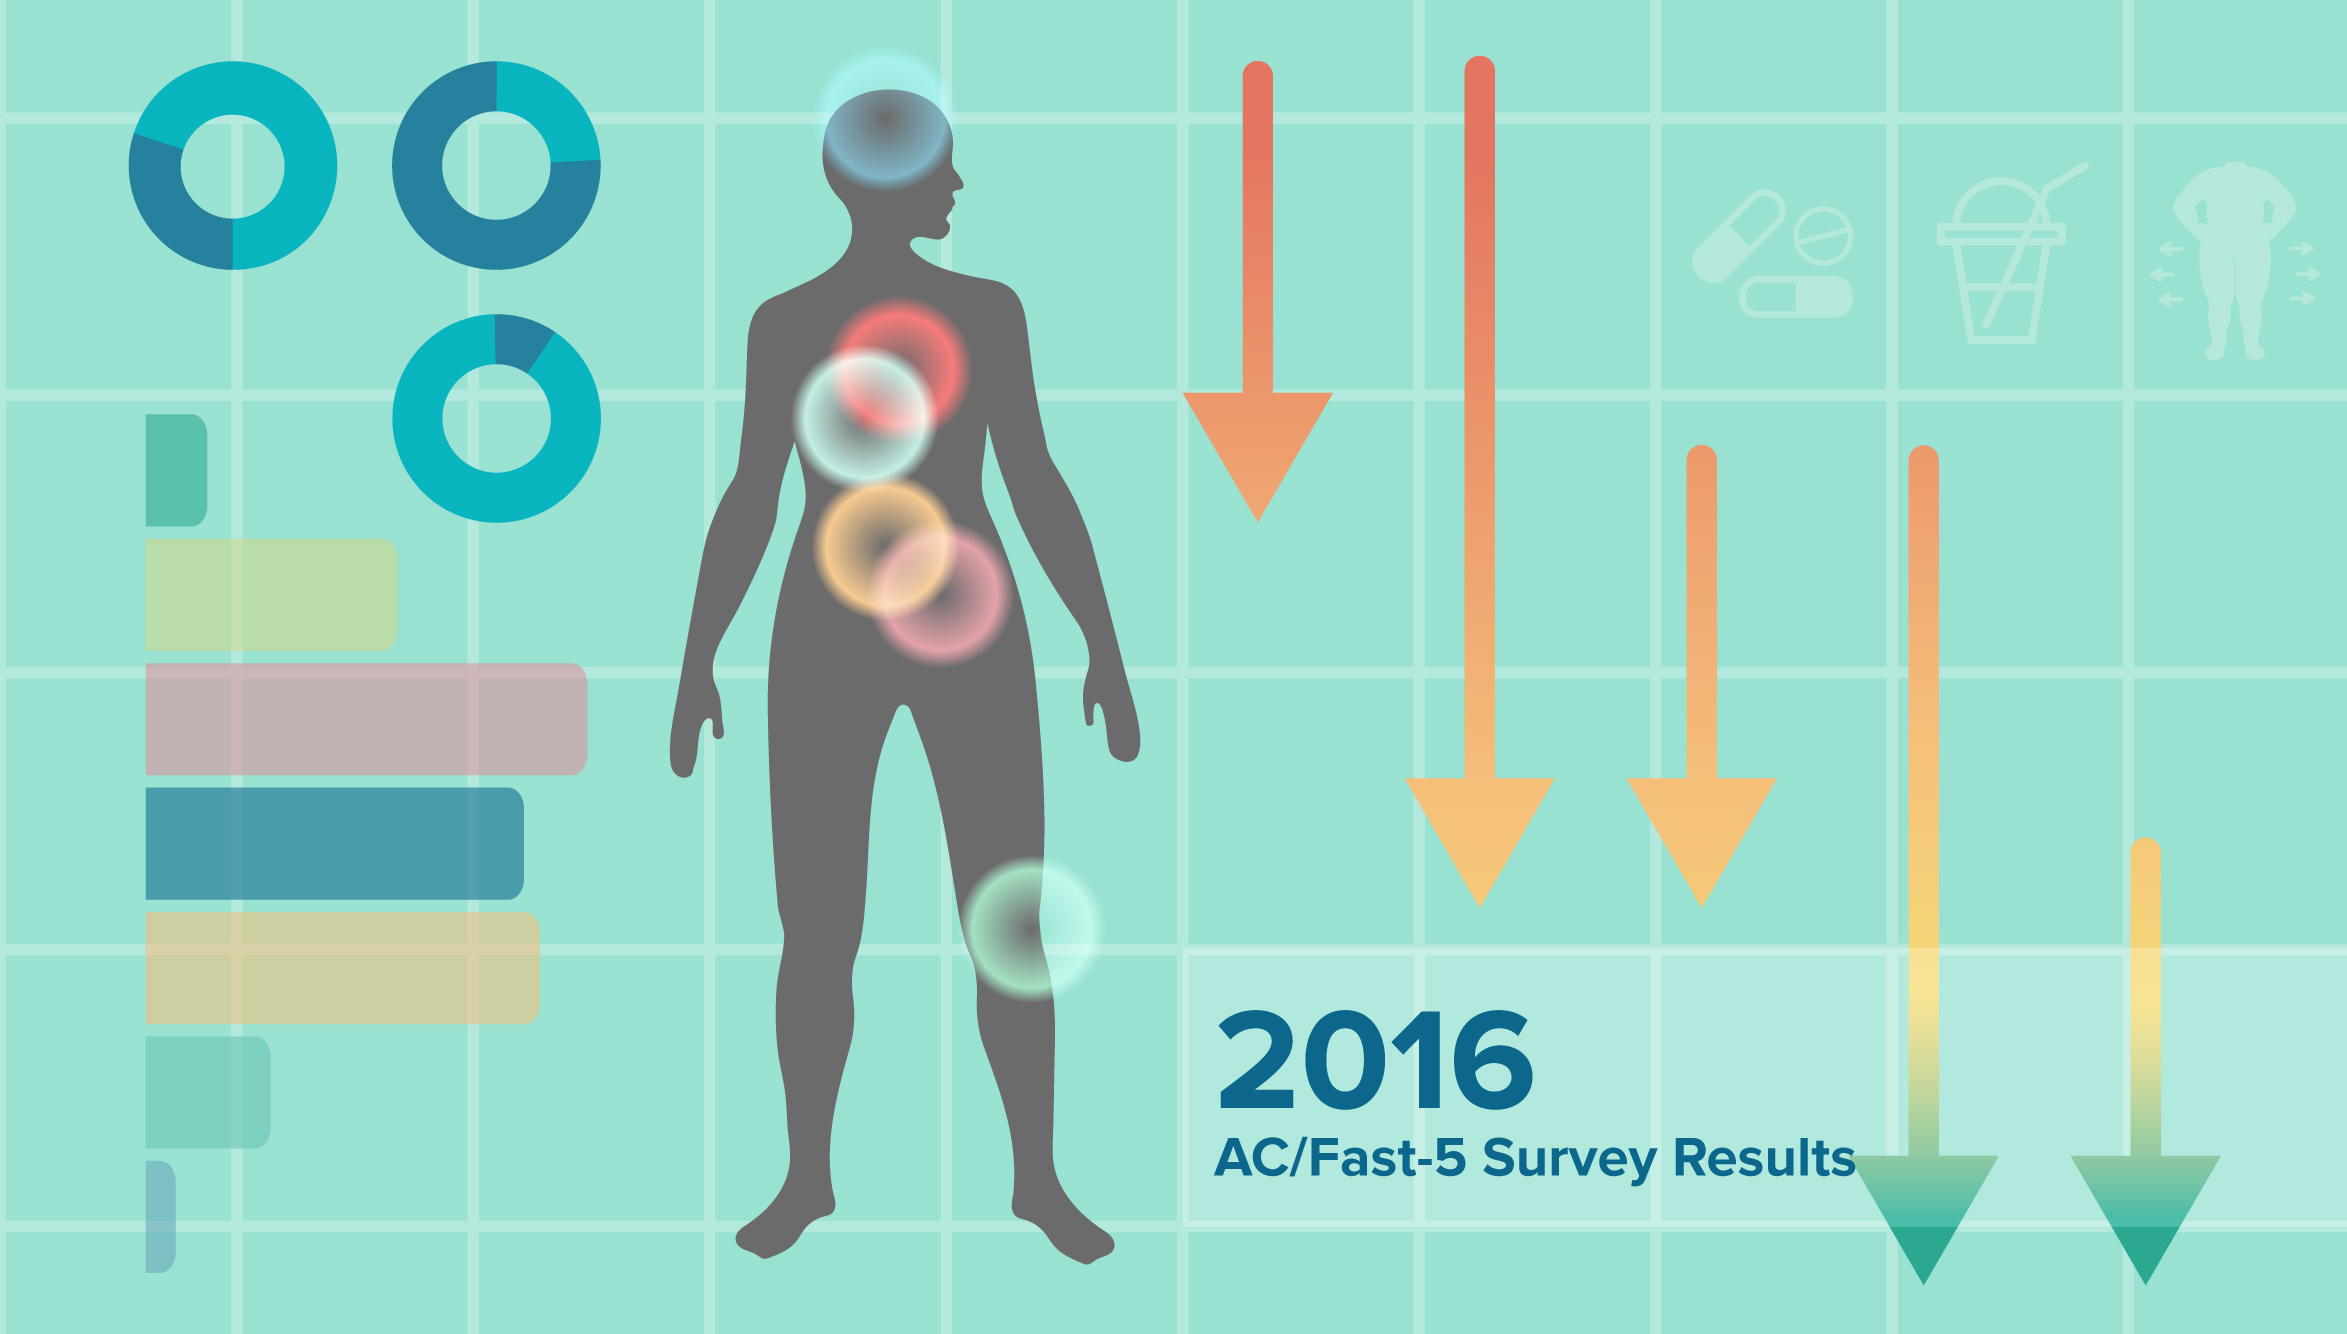 [INFOGRAPHIC] 2016 AC/Fast-5 Survey Results